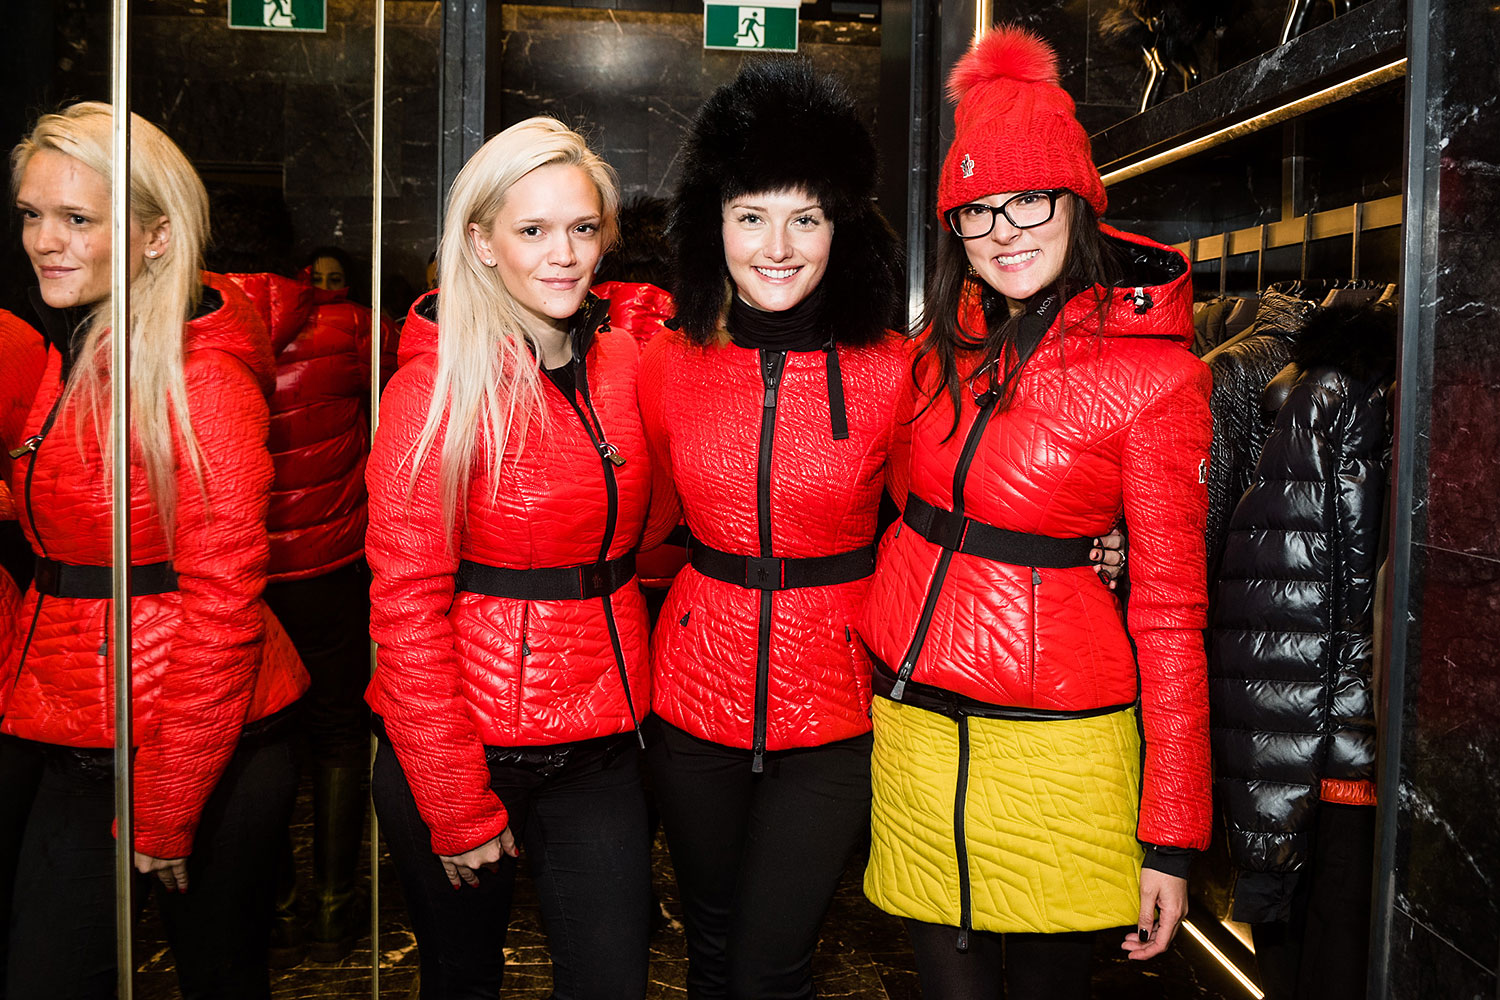 event-photography-corporate-event-store-opening-moncler-yaletown-photography-photo